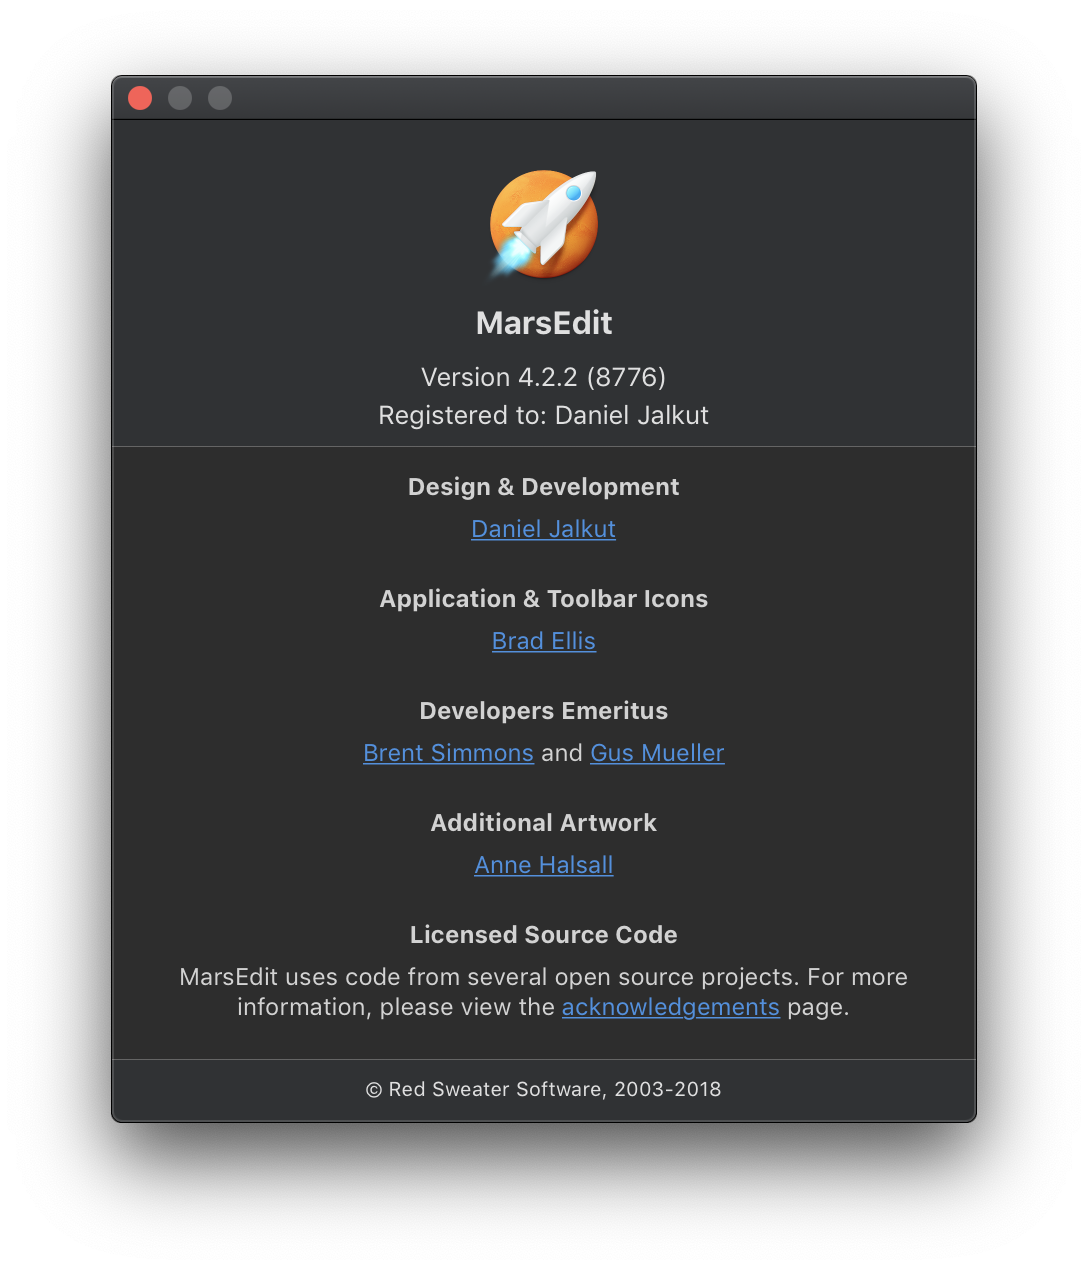 Screenshot of MarsEdit's about box window after the HTML content has been adapted to Dark Mode